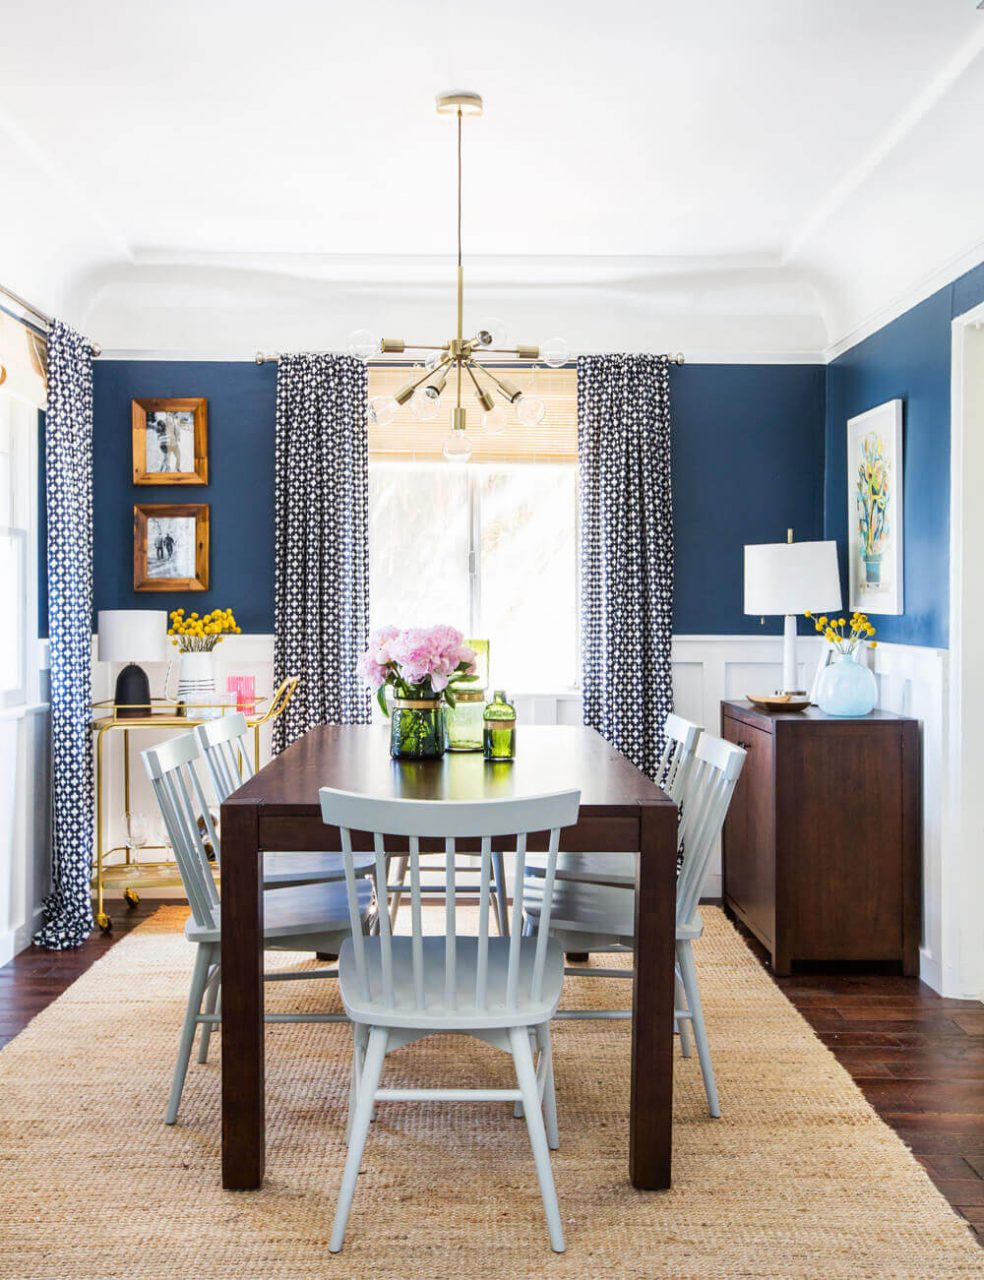 120 Budget Furniture Picks For An Affordable But Stylish Dining Room